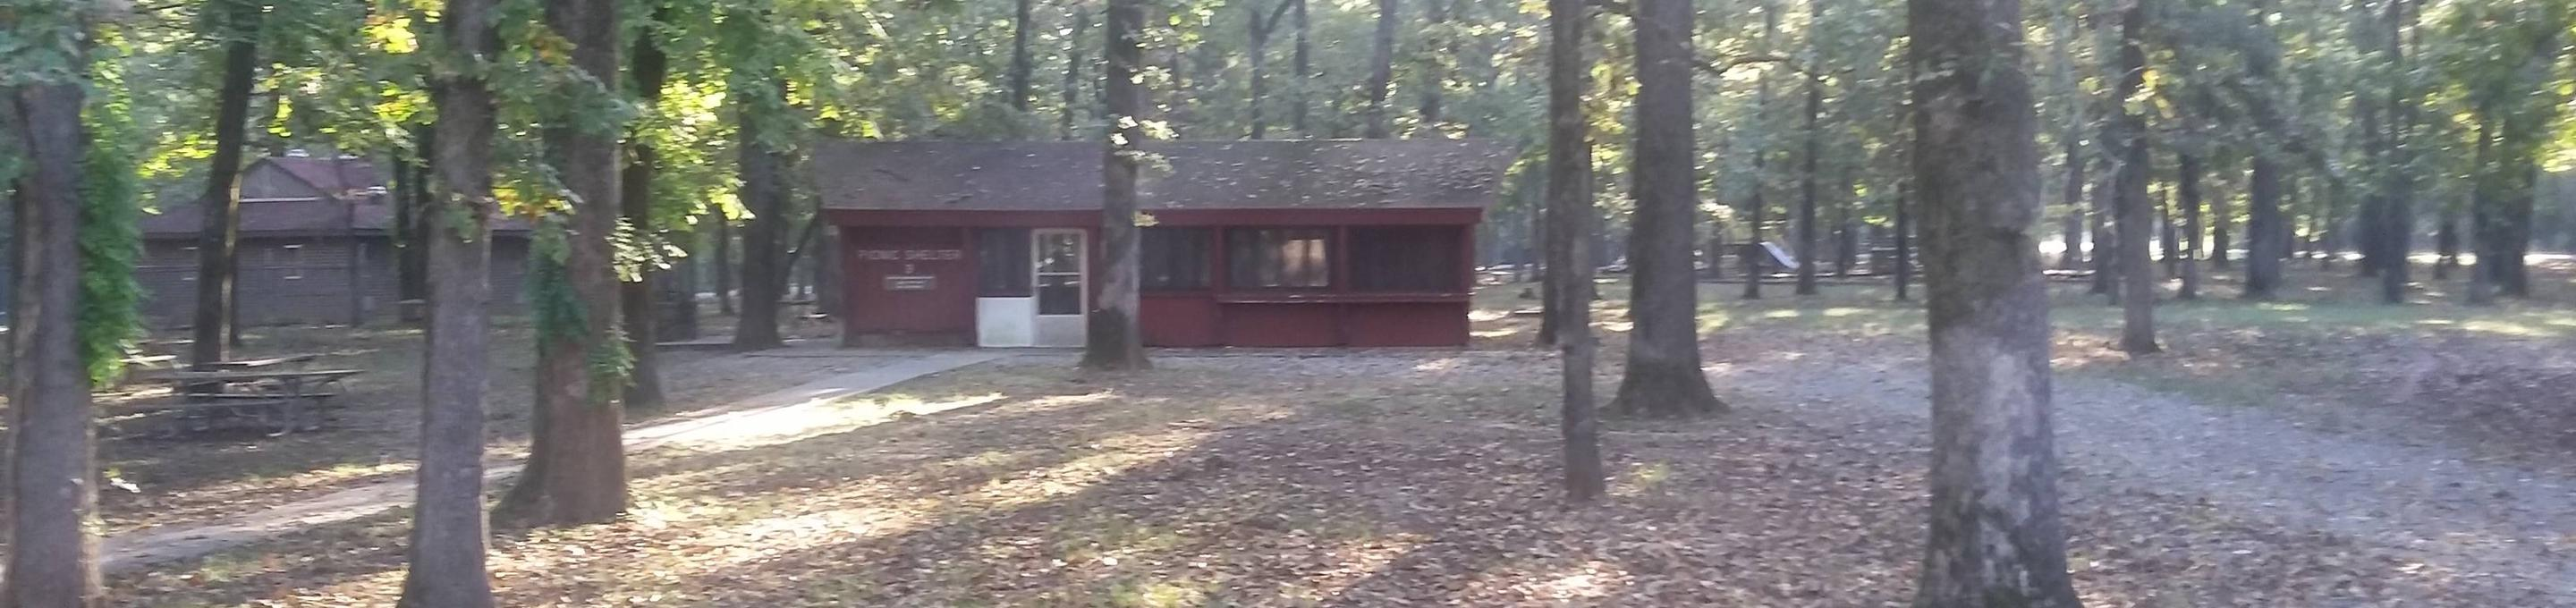 Group Shelter 1 With ElectricGroup Shelter 1